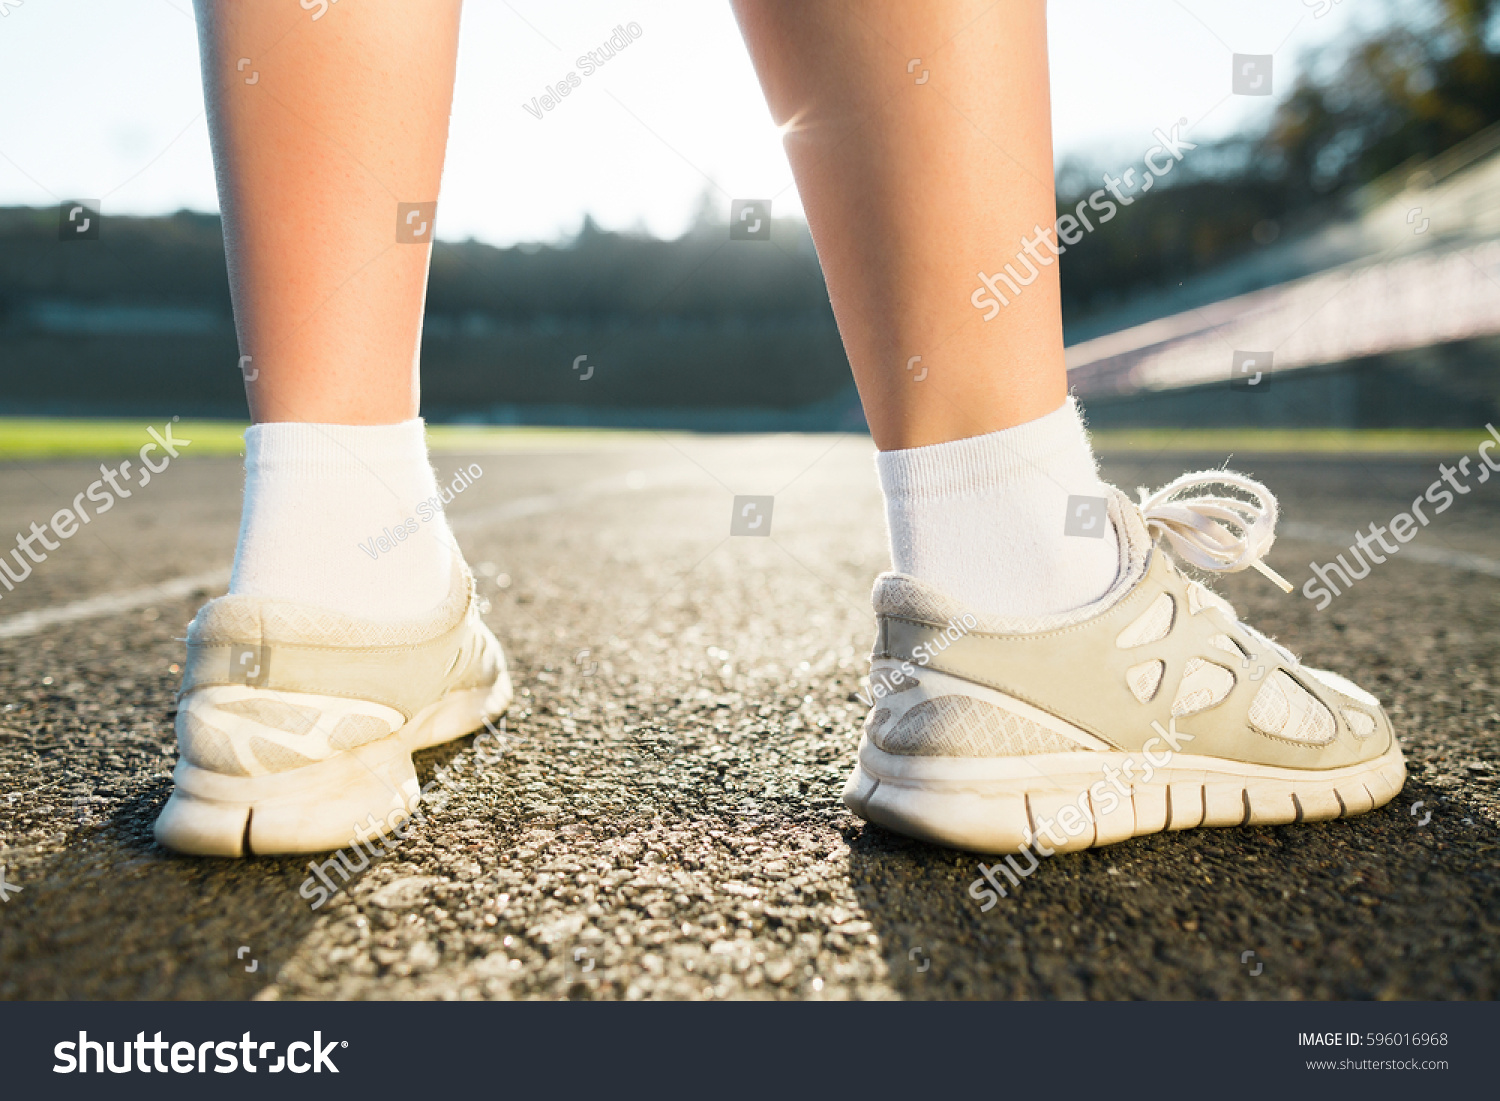 Consider, that girls ankle socks and legs are